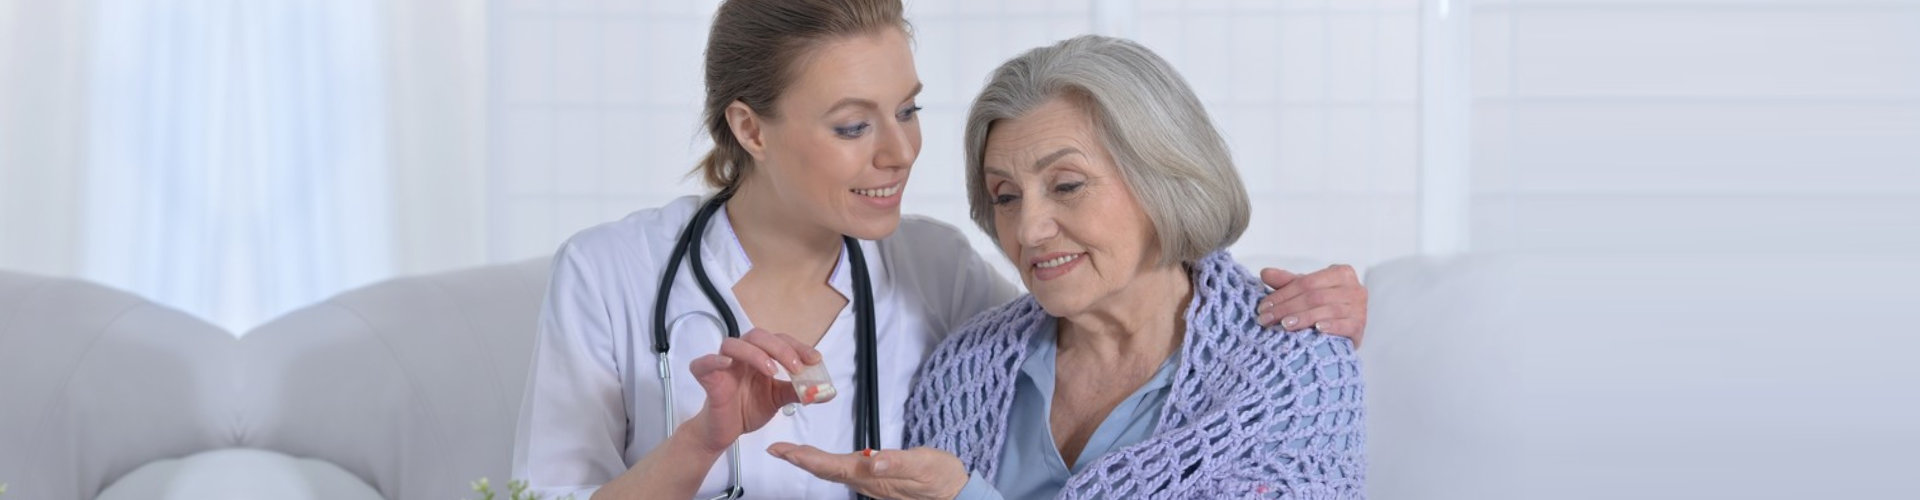 psychiatrist giving medication to patient